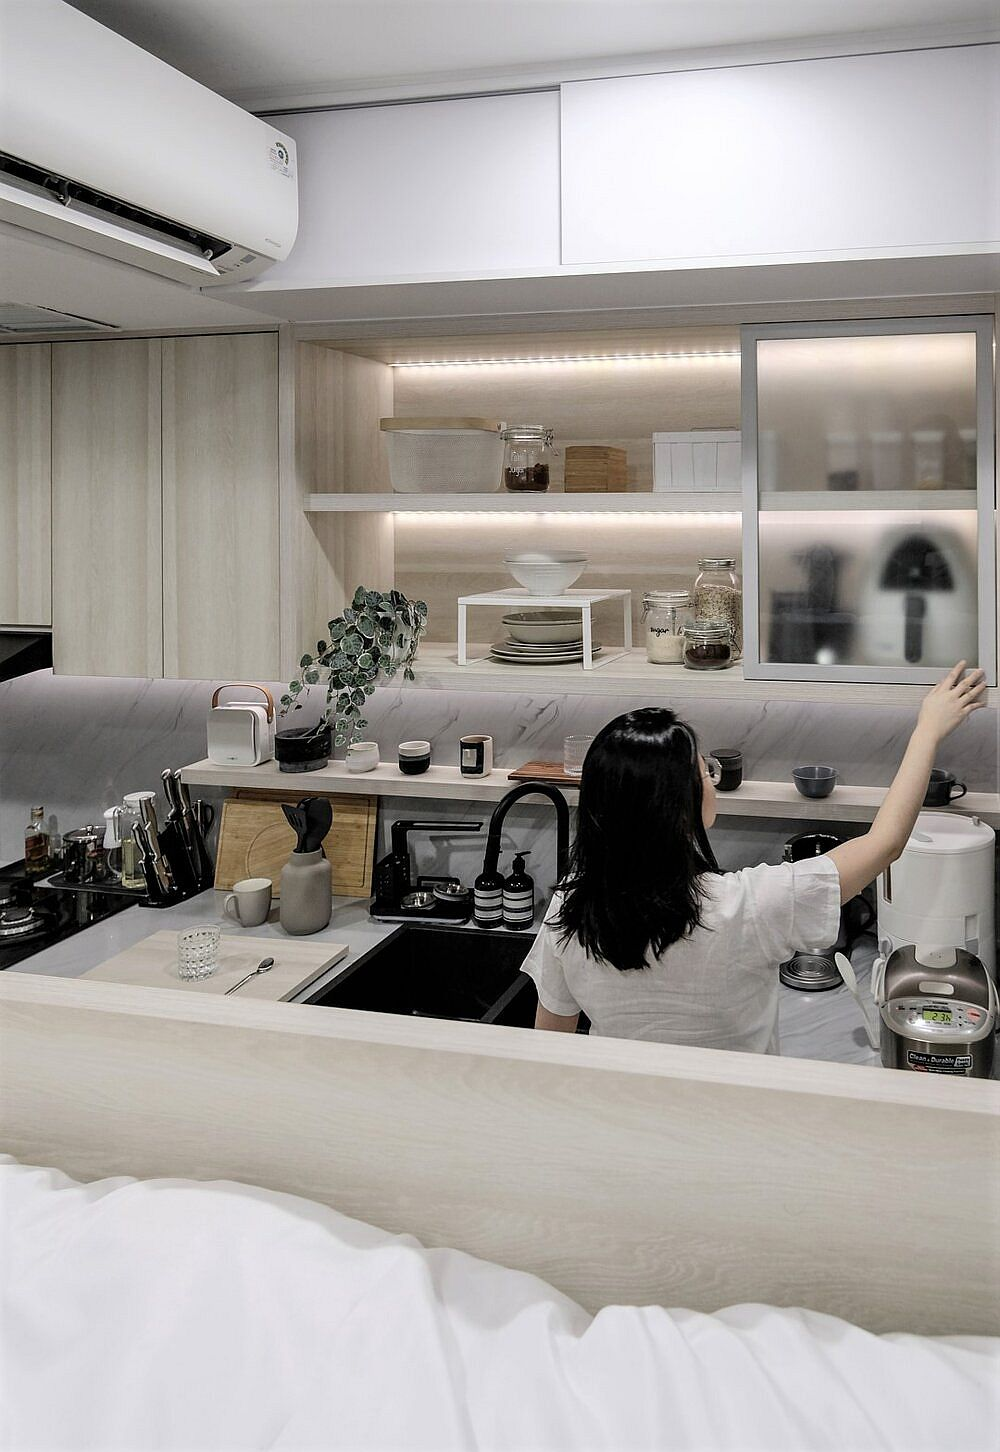 Tiny-functional-kitchen-inside-the-small-apartment-in-Jakarta-94296